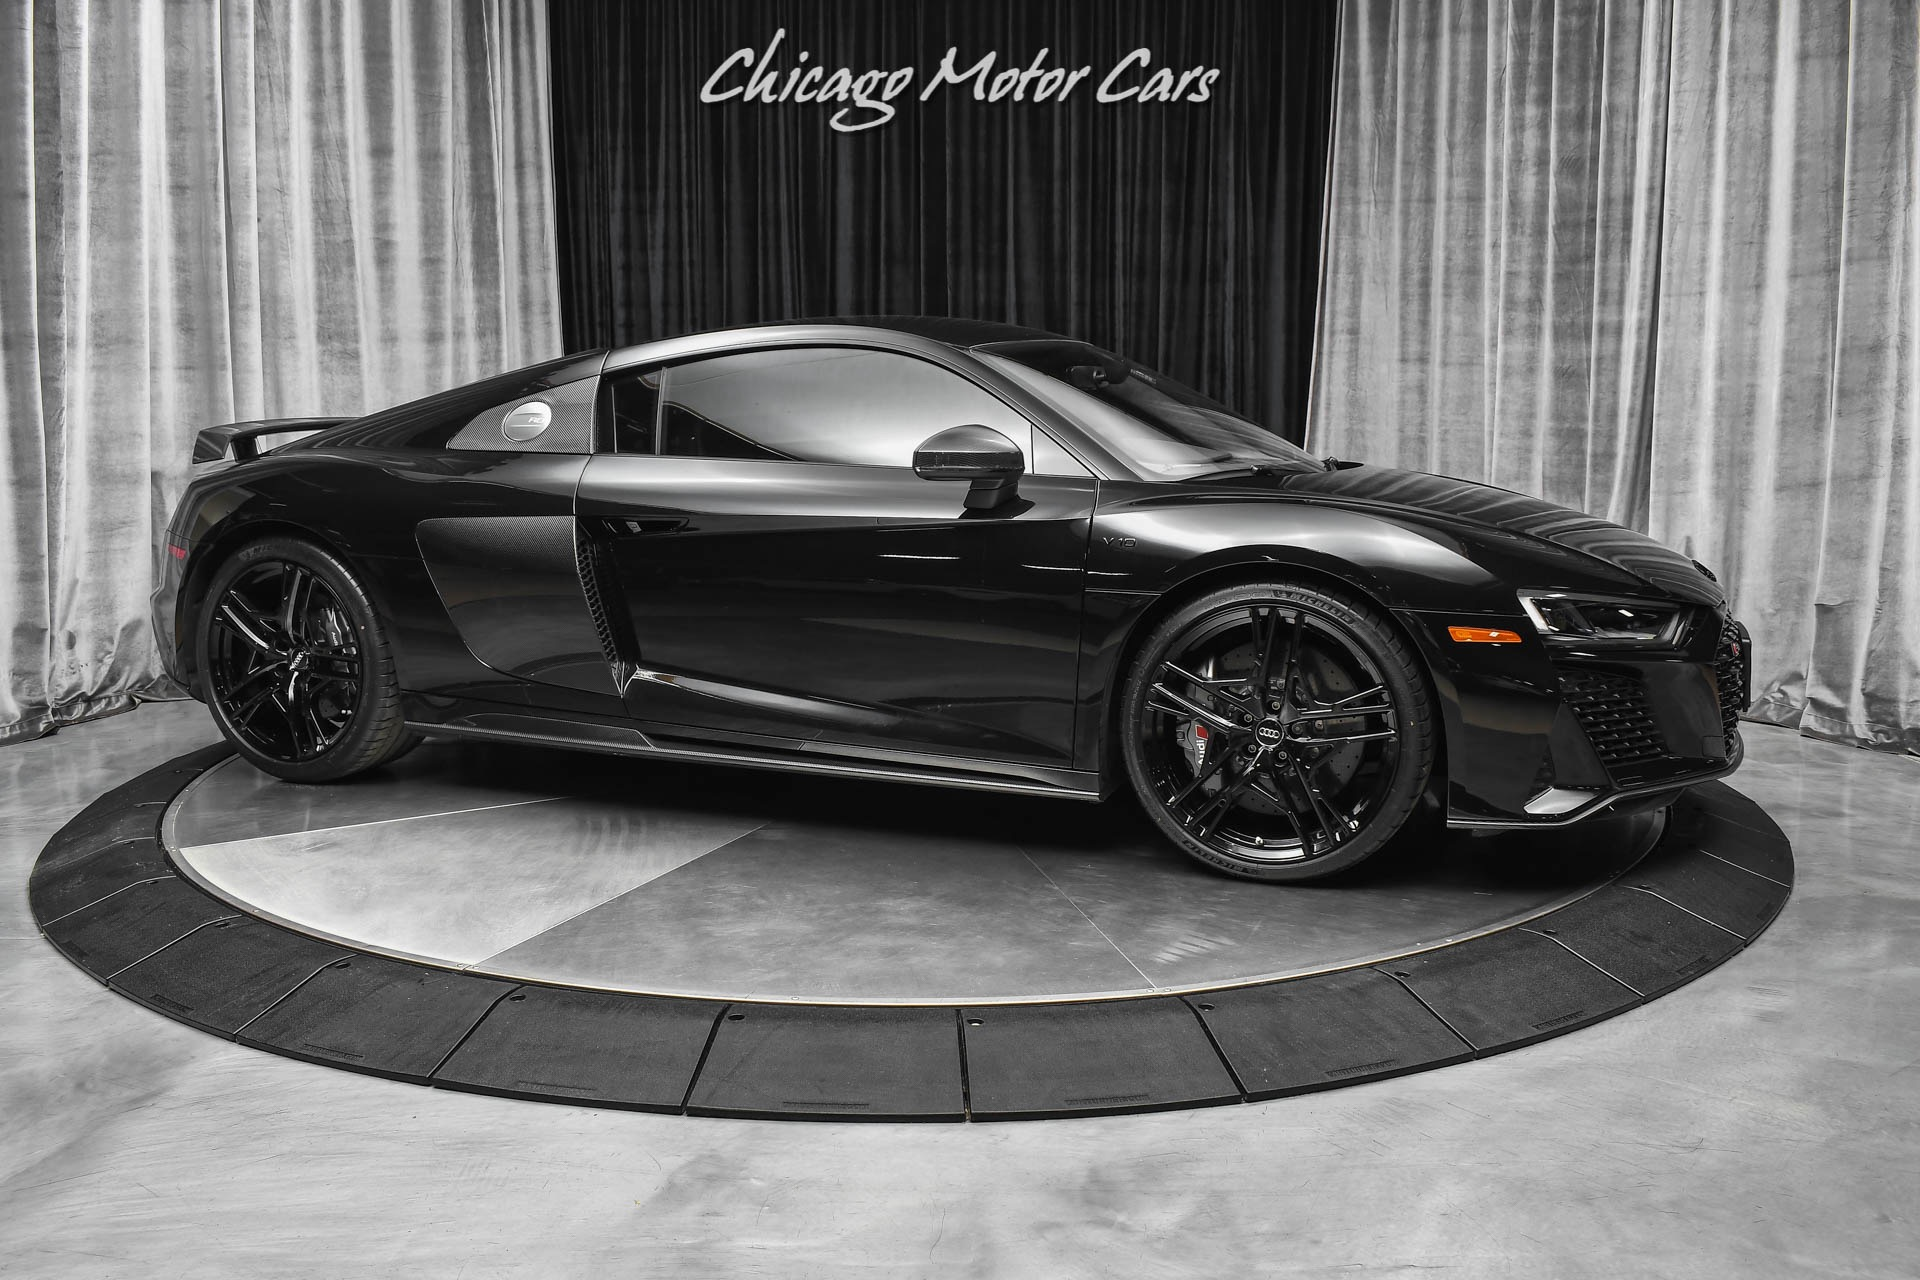 Used-2020-Audi-R8-52-quattro-V10-performance-Coupe-SPORT-PACK-DIAMOND-STITCHED-437-MILES